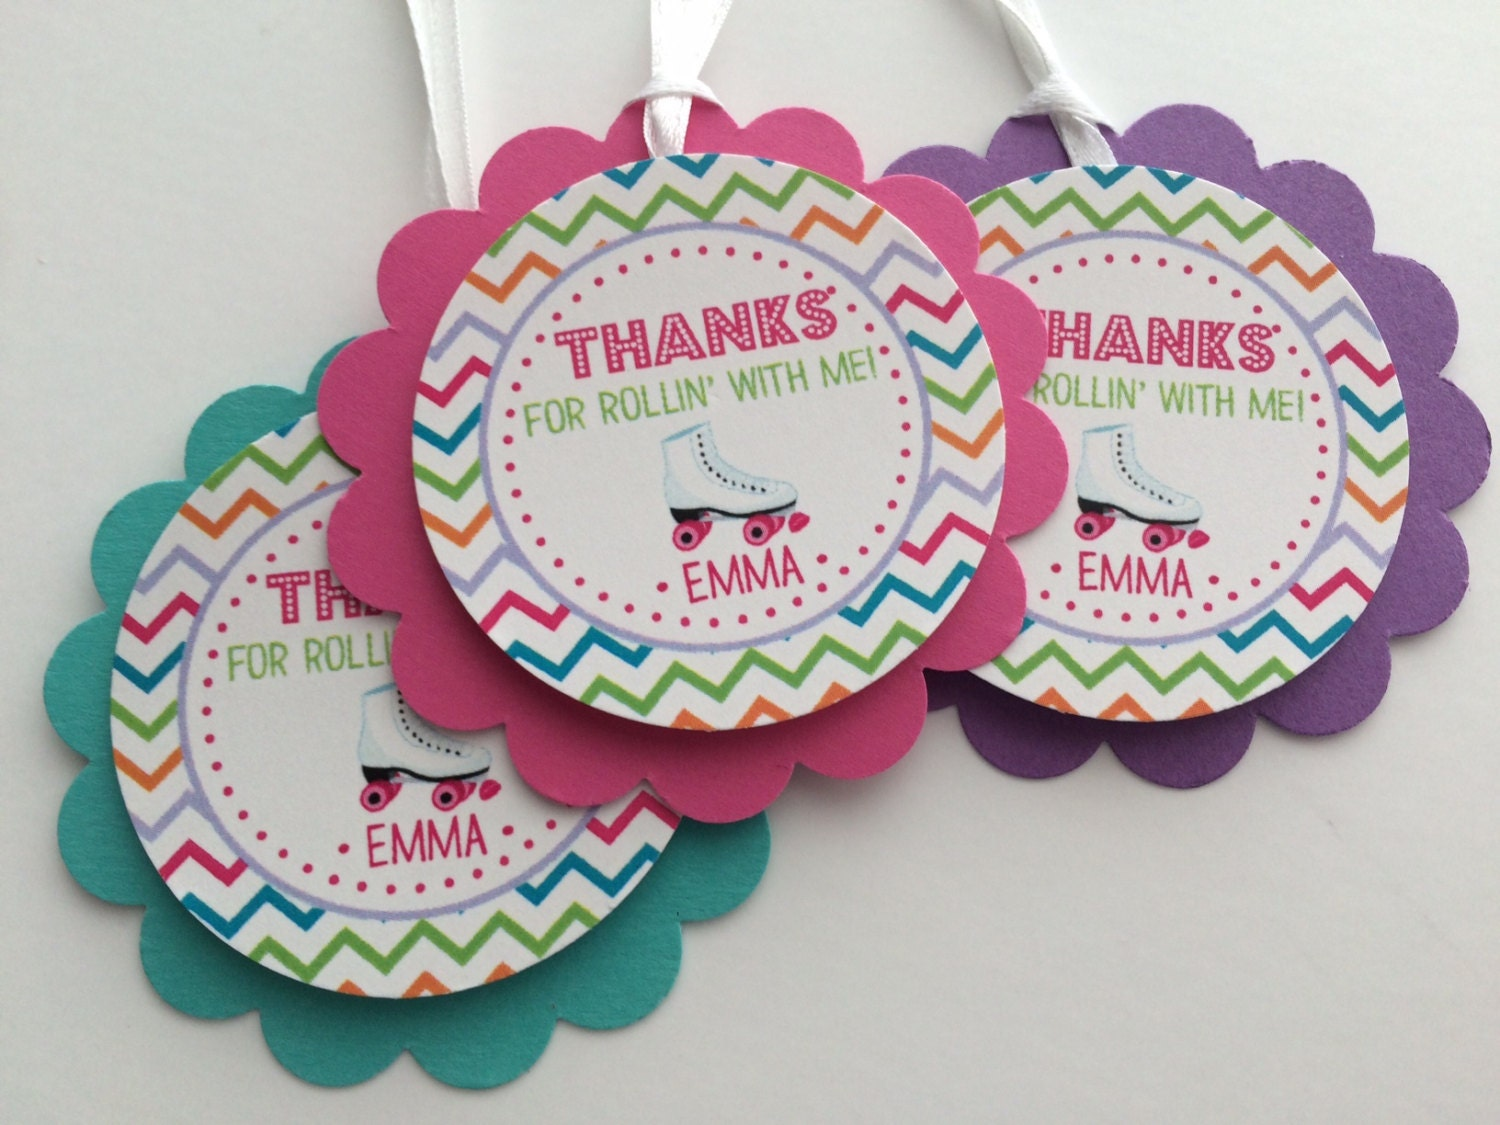 Roller skating party favors - Favor Tags 12 Girls Birthday Party Favor Tags Skating Roller Skating Girls Birthday Party Decorations Girl Party Favors